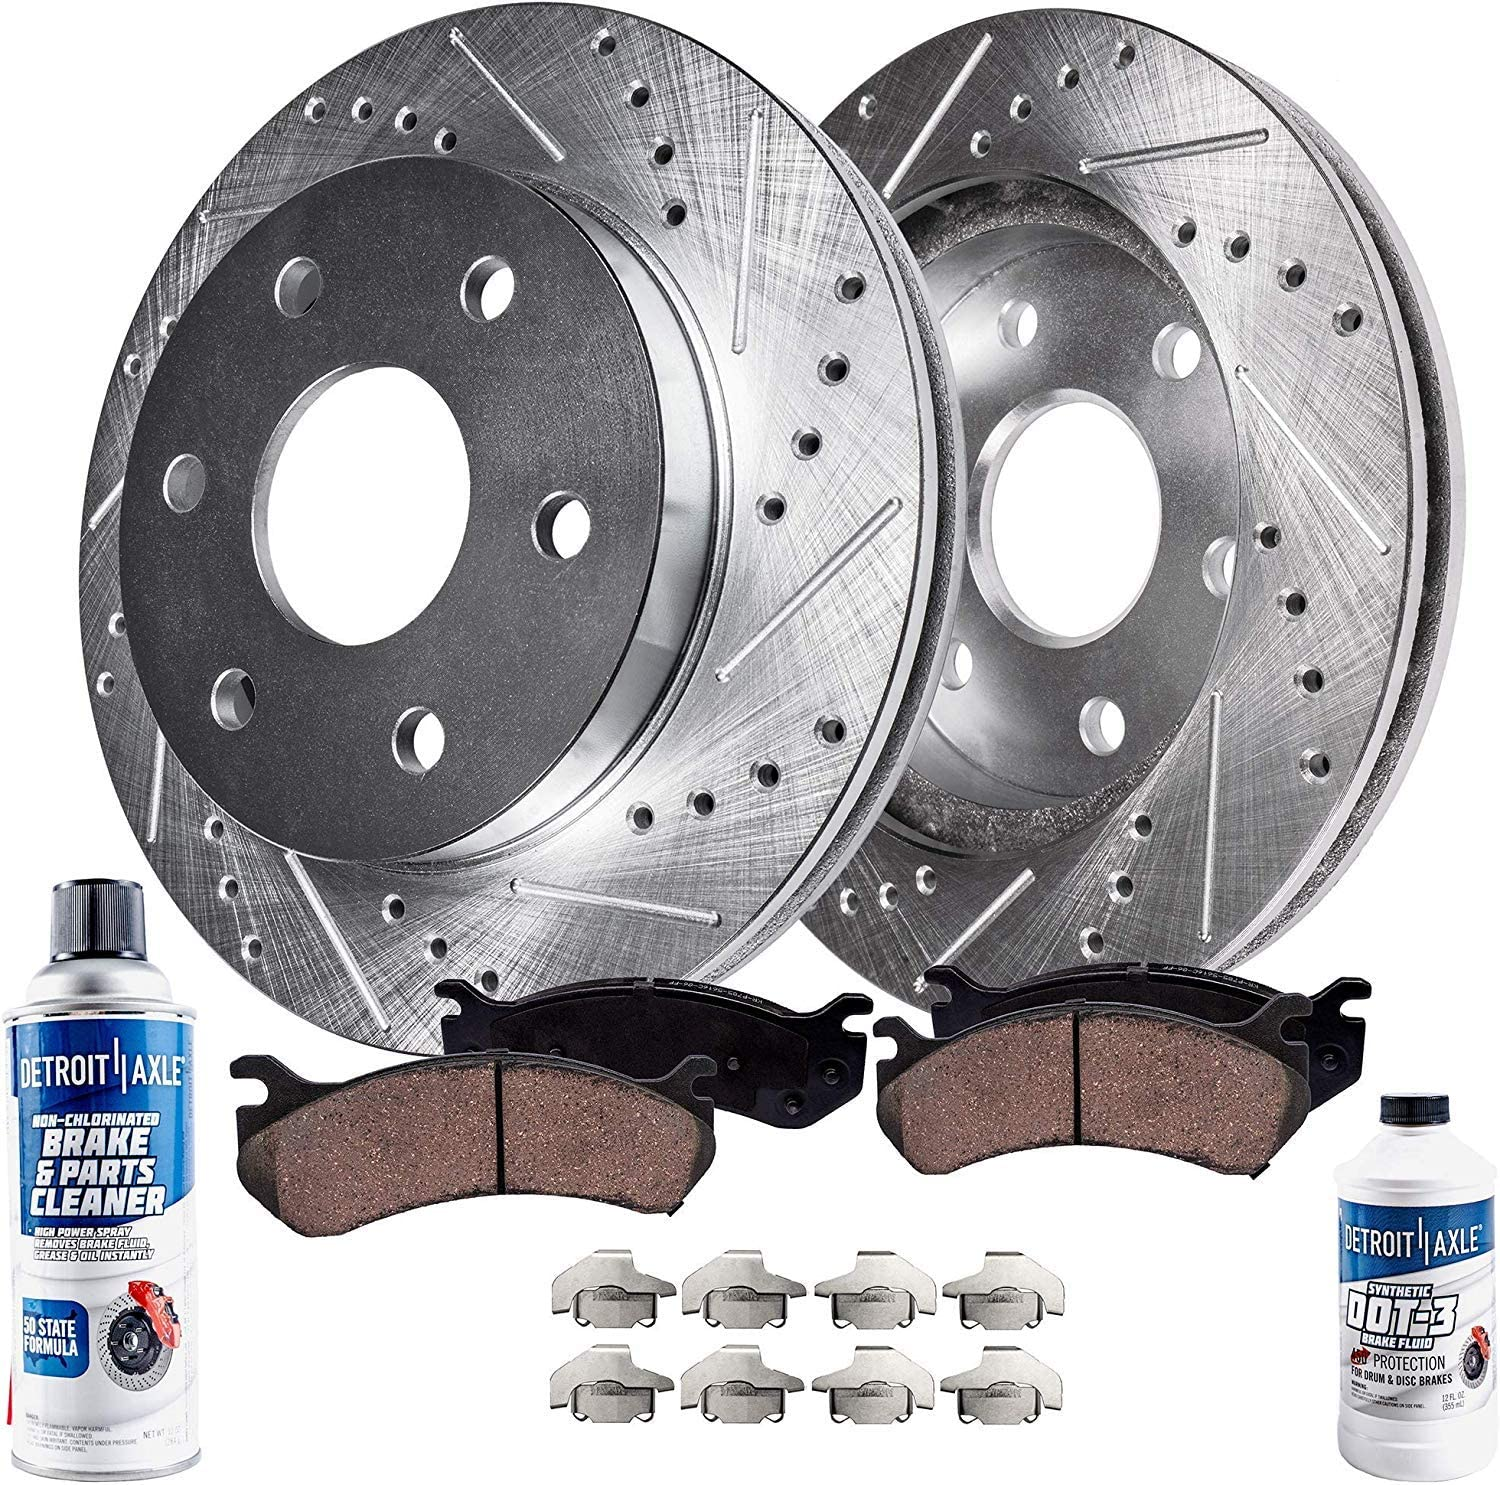 Detroit Axle Front Drilled Slotted Disc Brake Rotors Replacement for Chevy GMC Express Silverado Suburban Savana Sierra Yukon XL 1500 Avalanche Tahoe w//Hardware 6 Lug No Police Pads